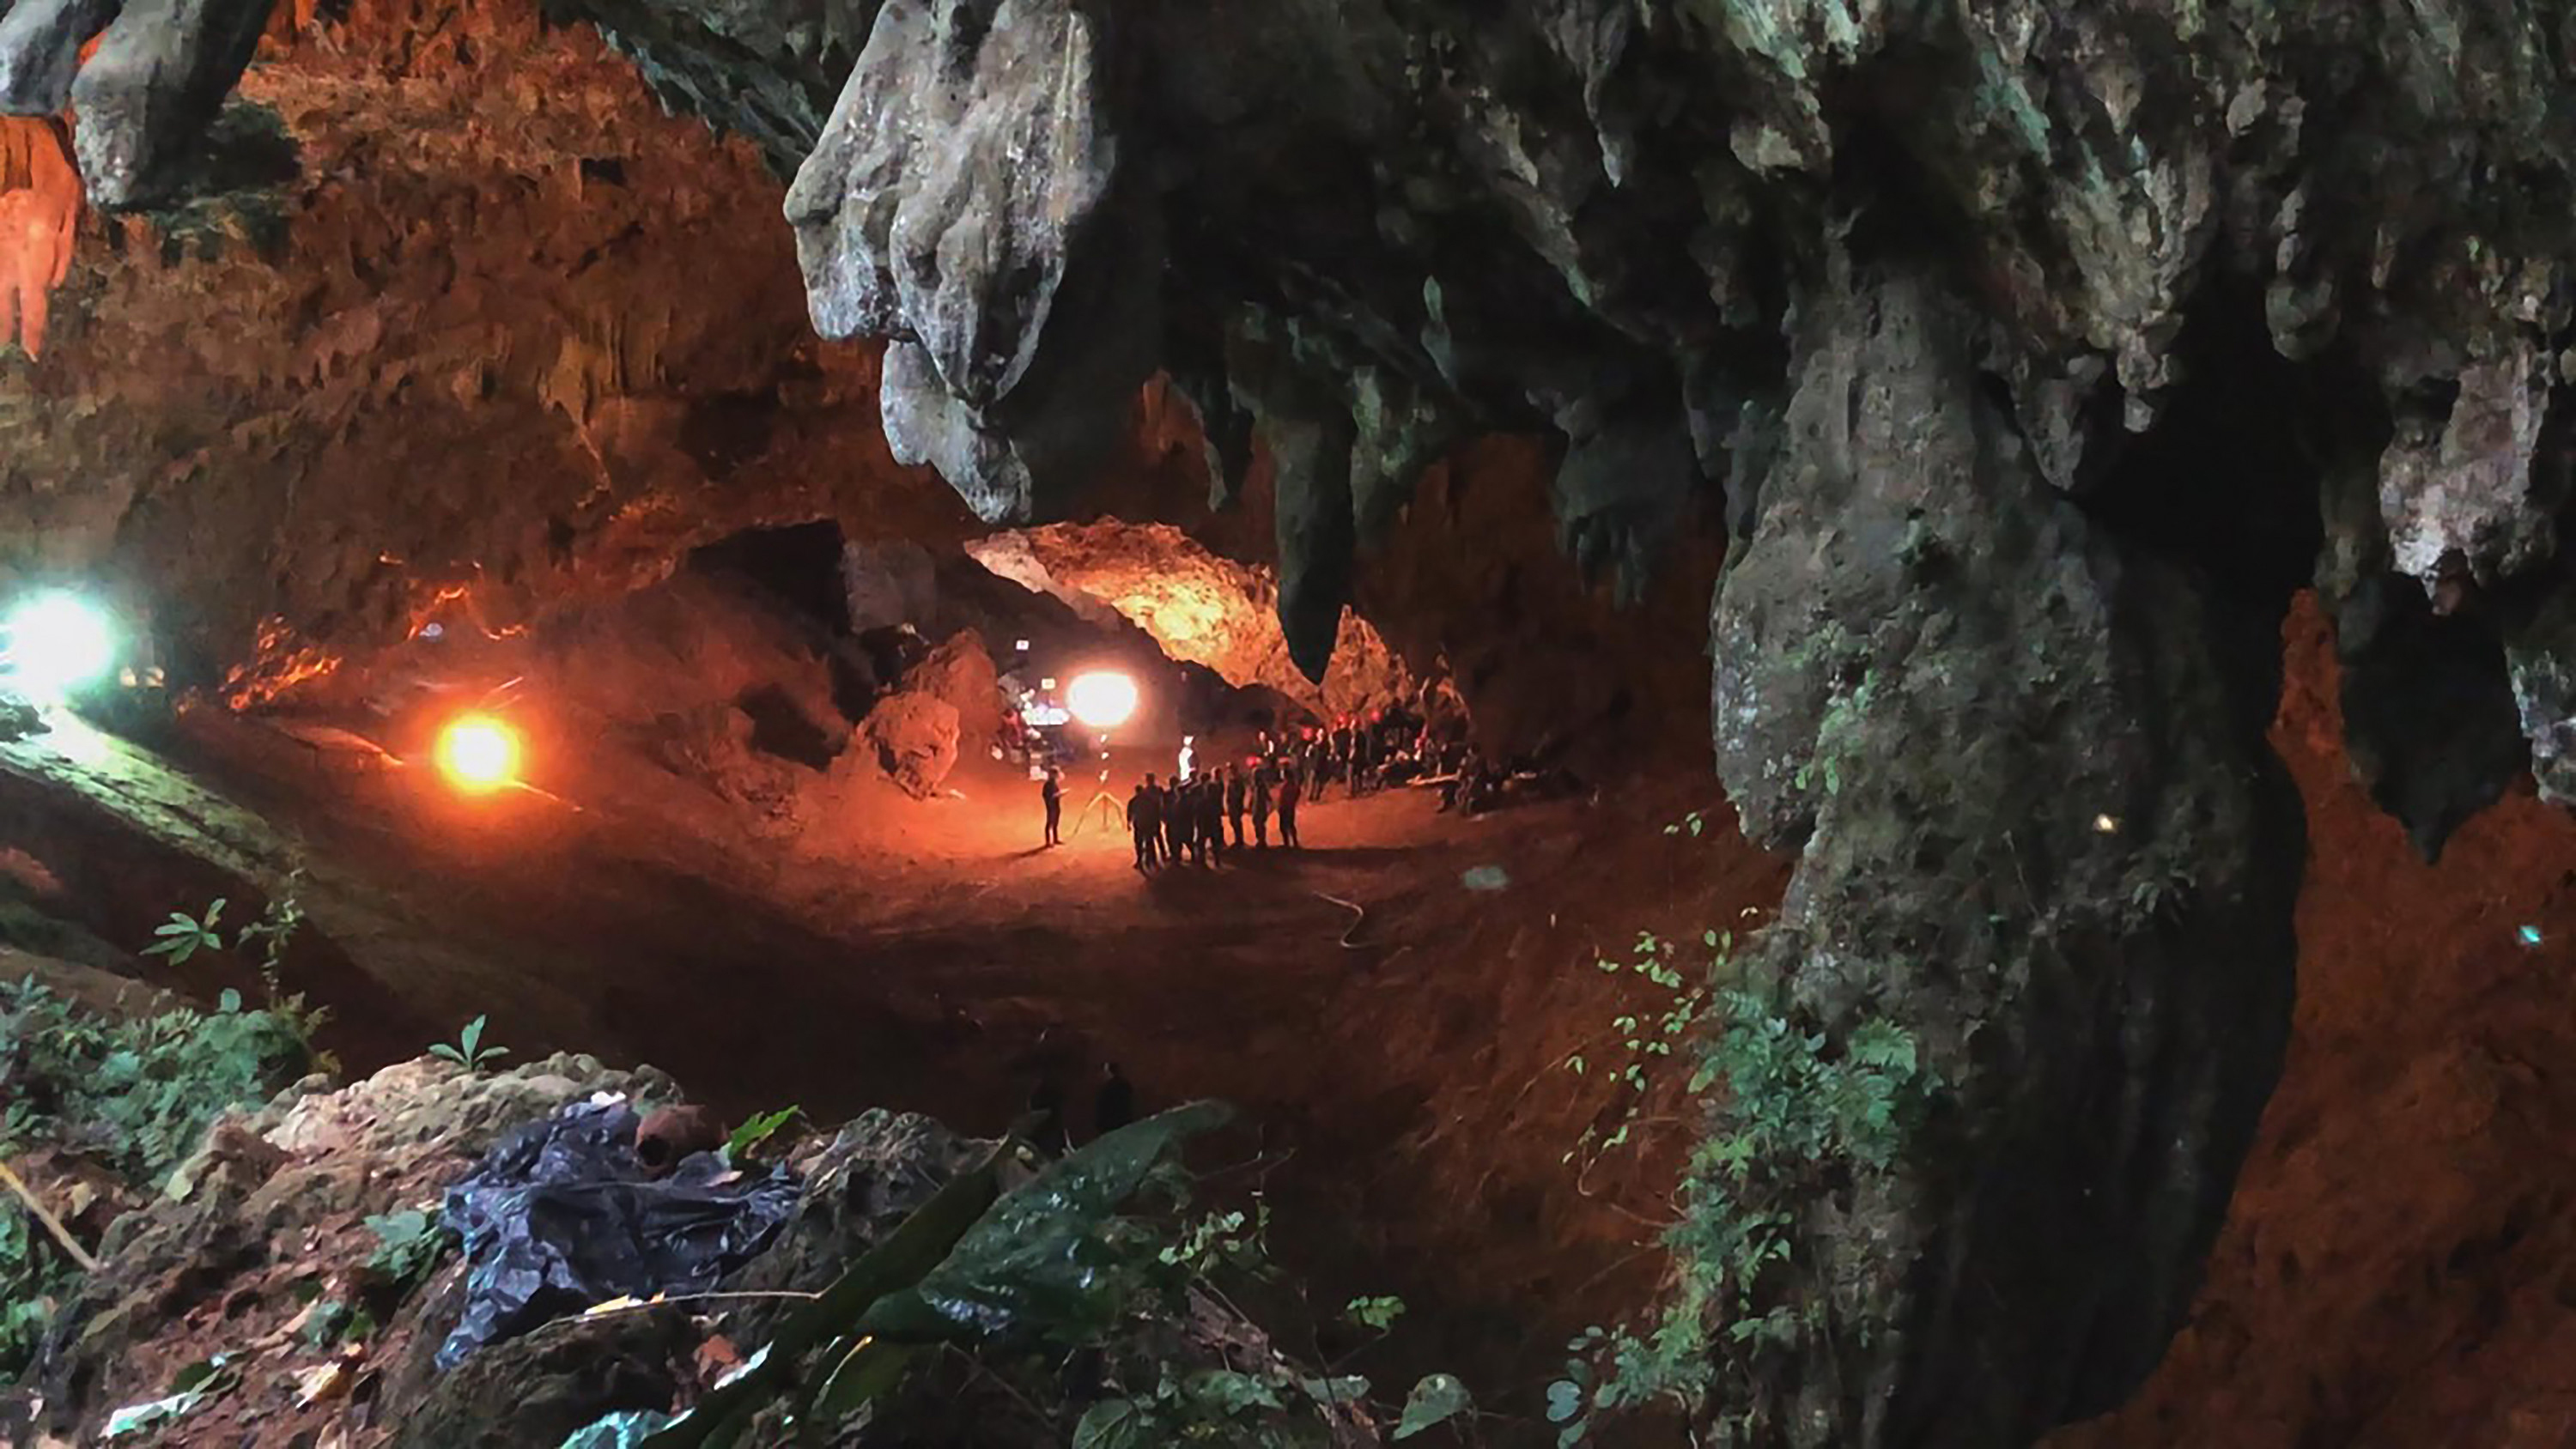 A pulled-out shot of a rescue team assembled in a Thailand cave, lit by one floodlight and dwarfed by large rock formations.